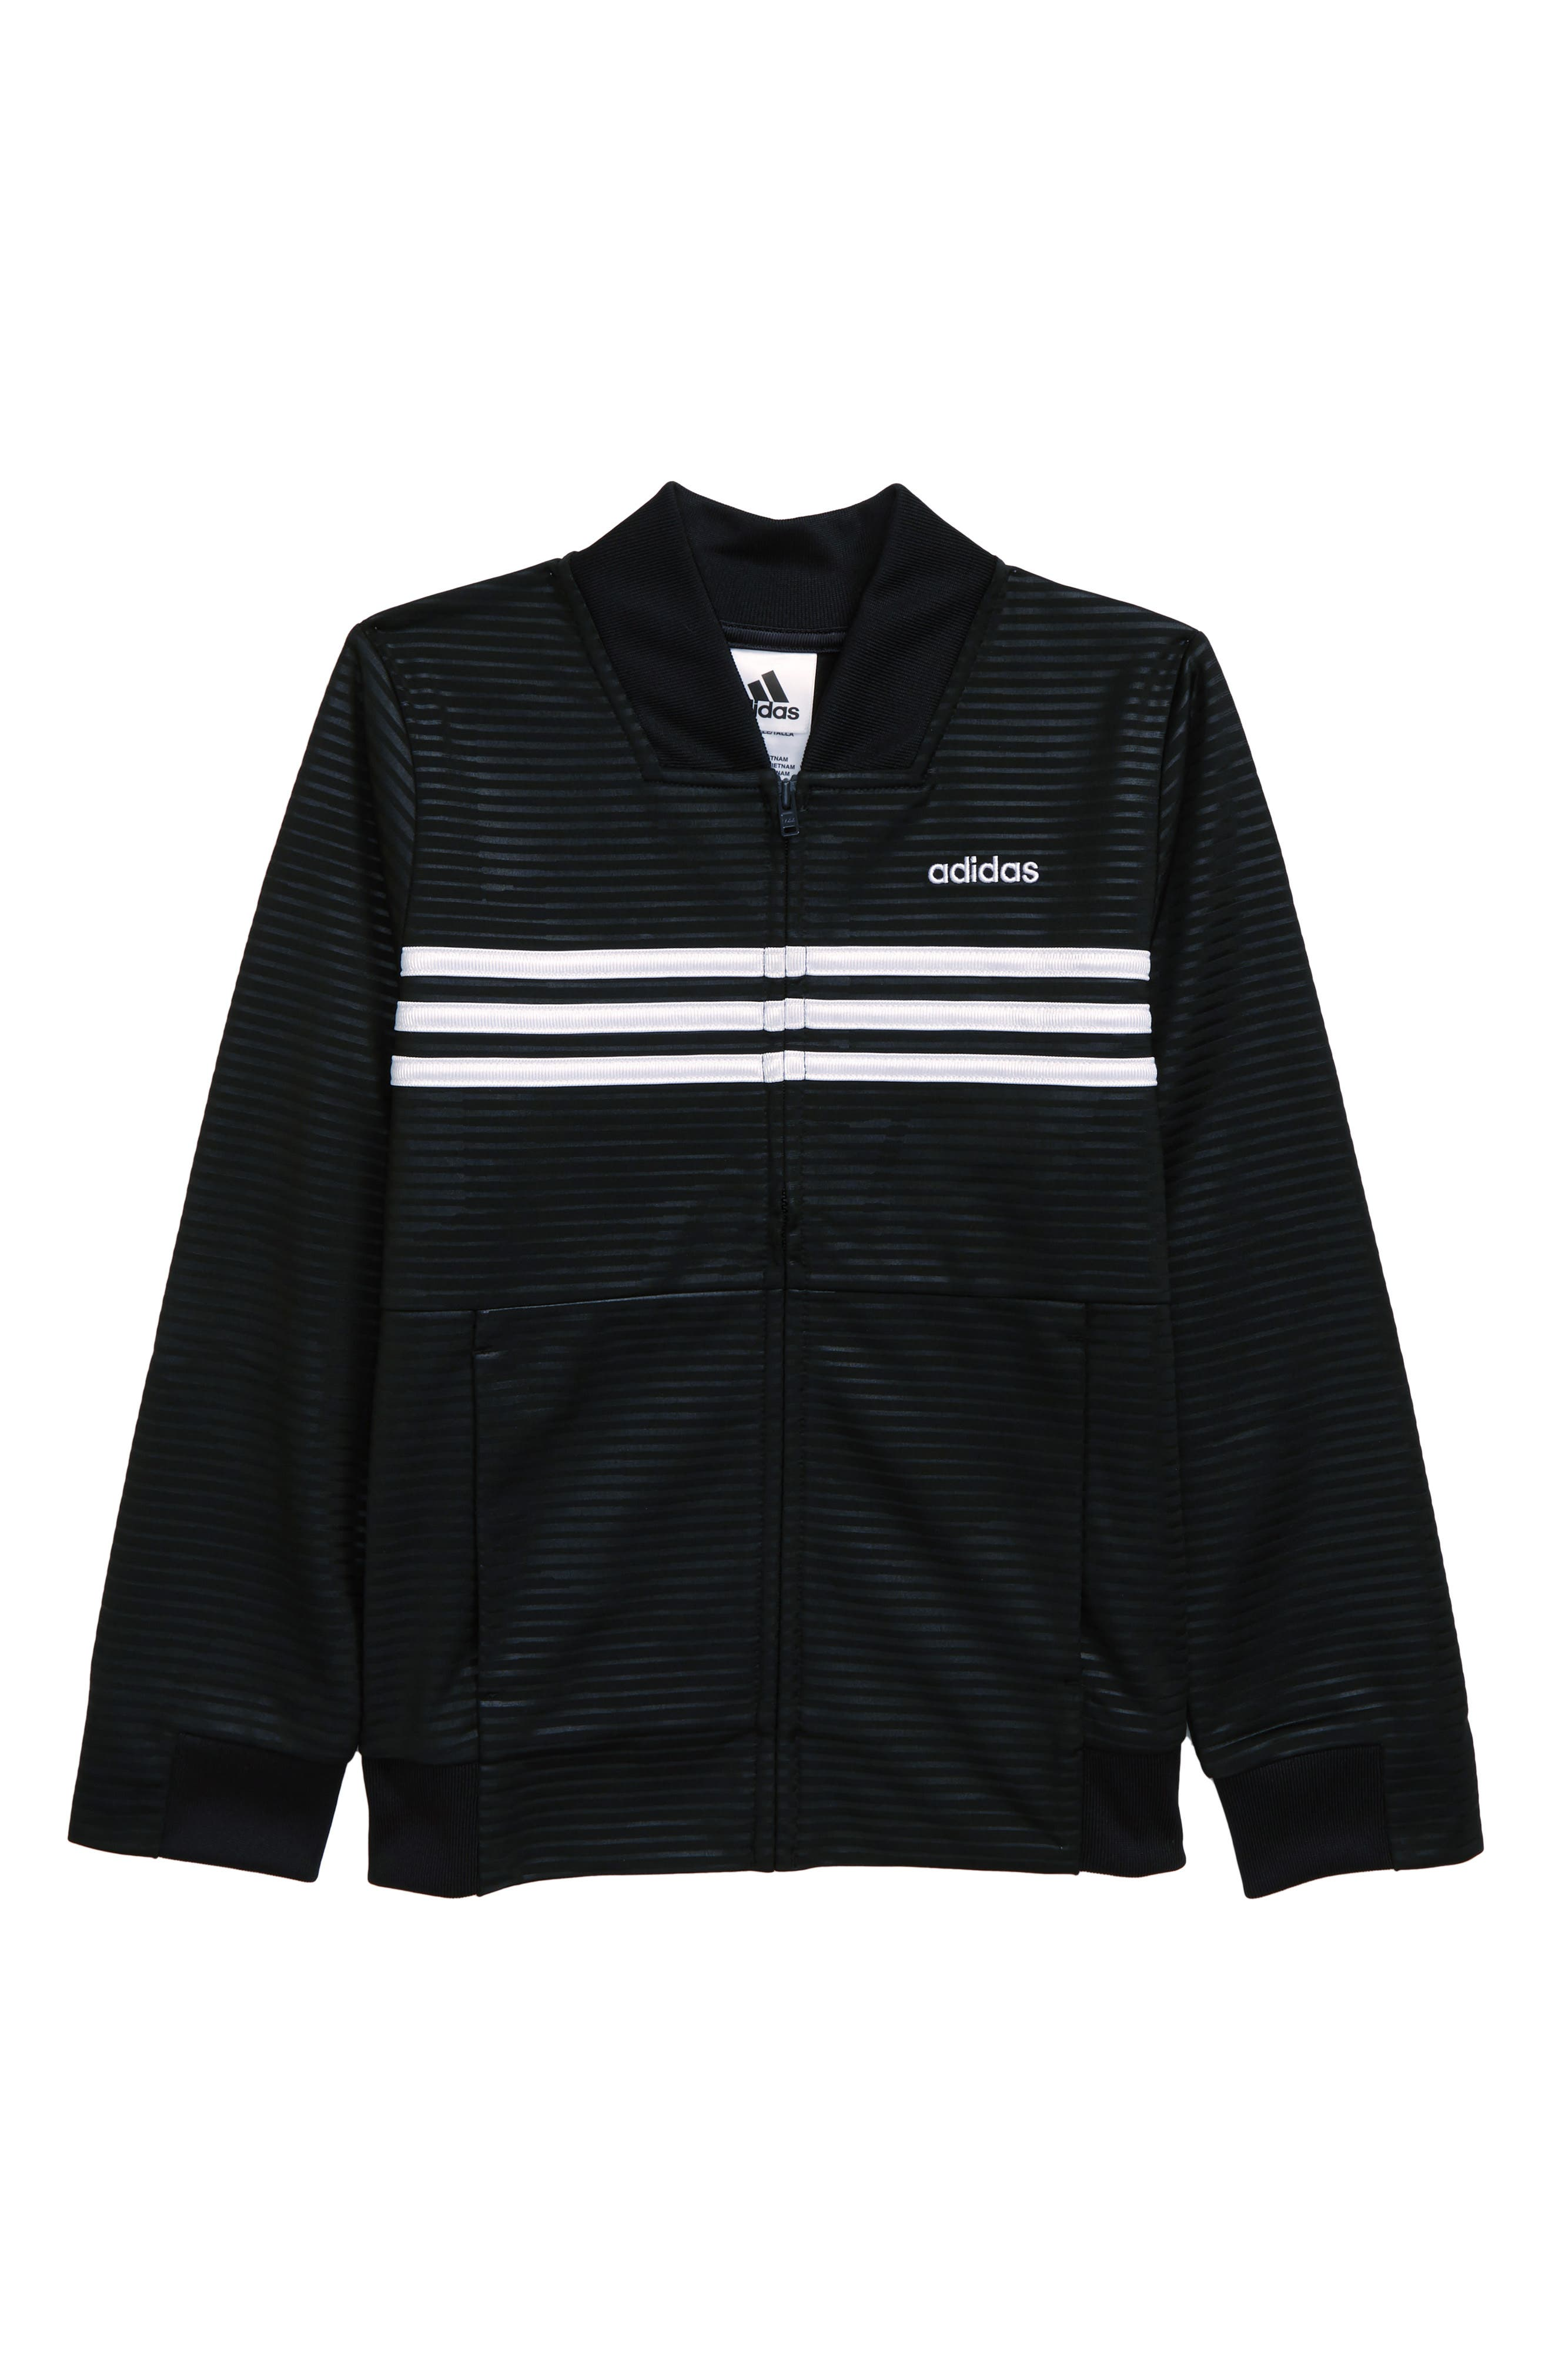 Boys' Adidas Clothes (Sizes 2T 7): T Shirts, Polos & Jeans